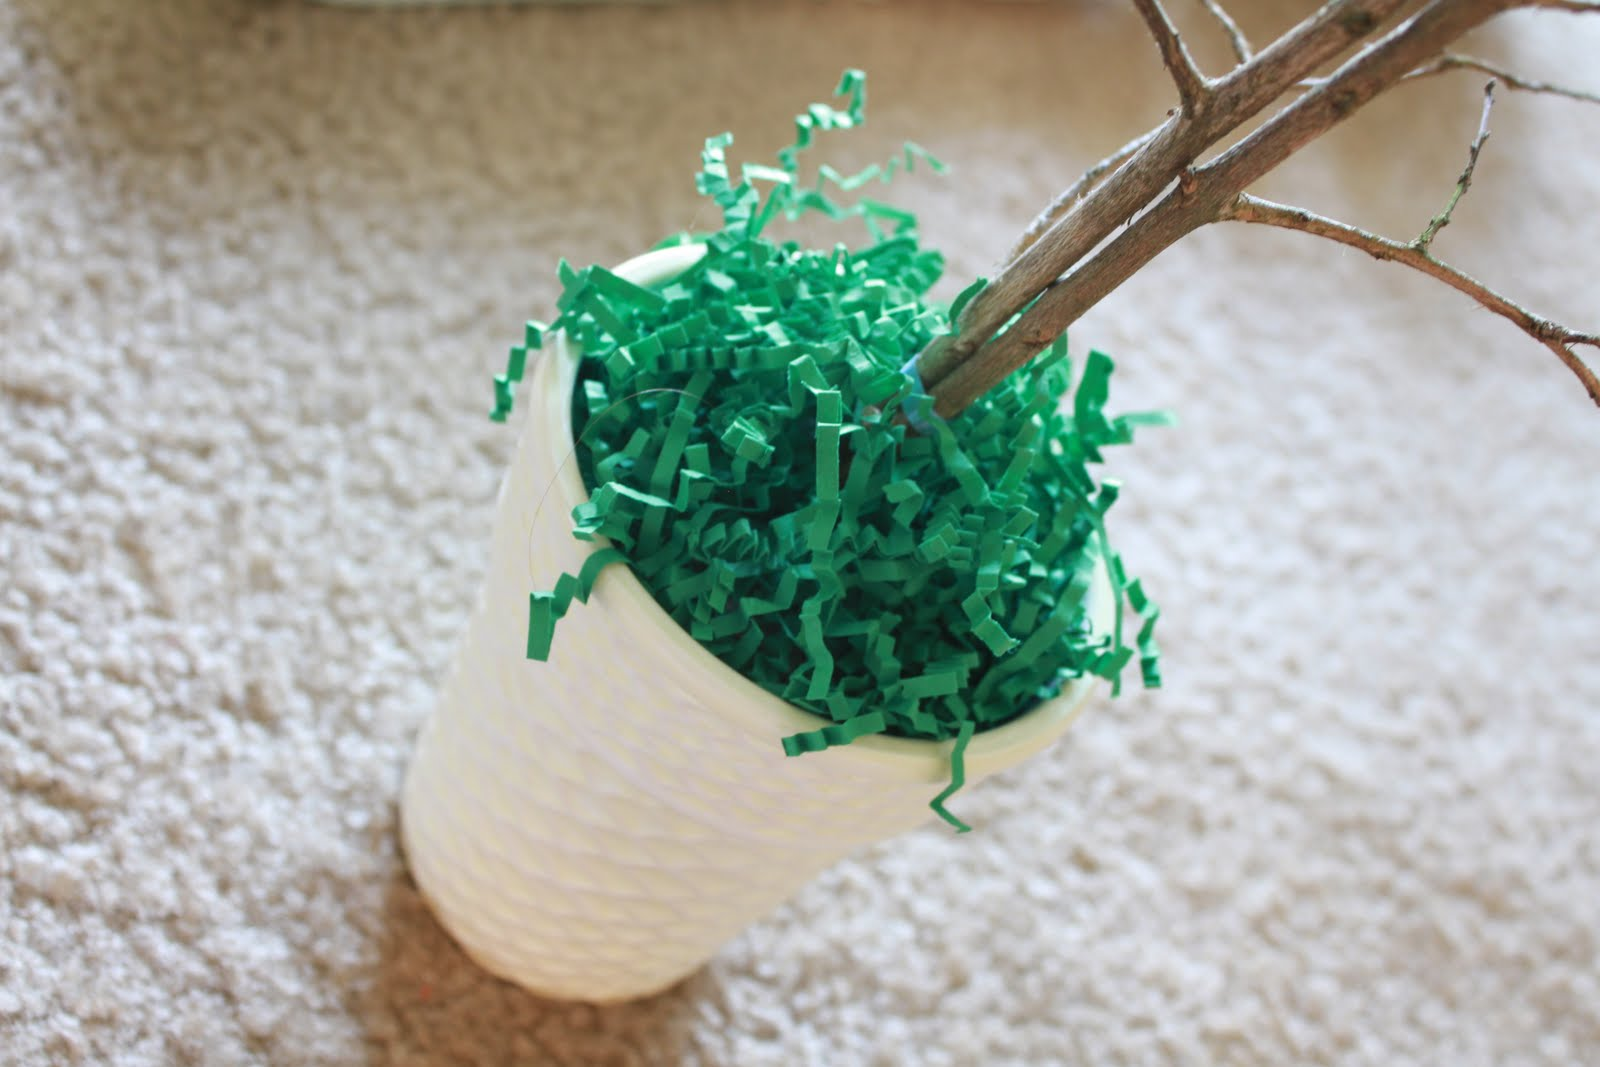 Making our house a home easter egg tree centerpiece How to make an easter egg tree